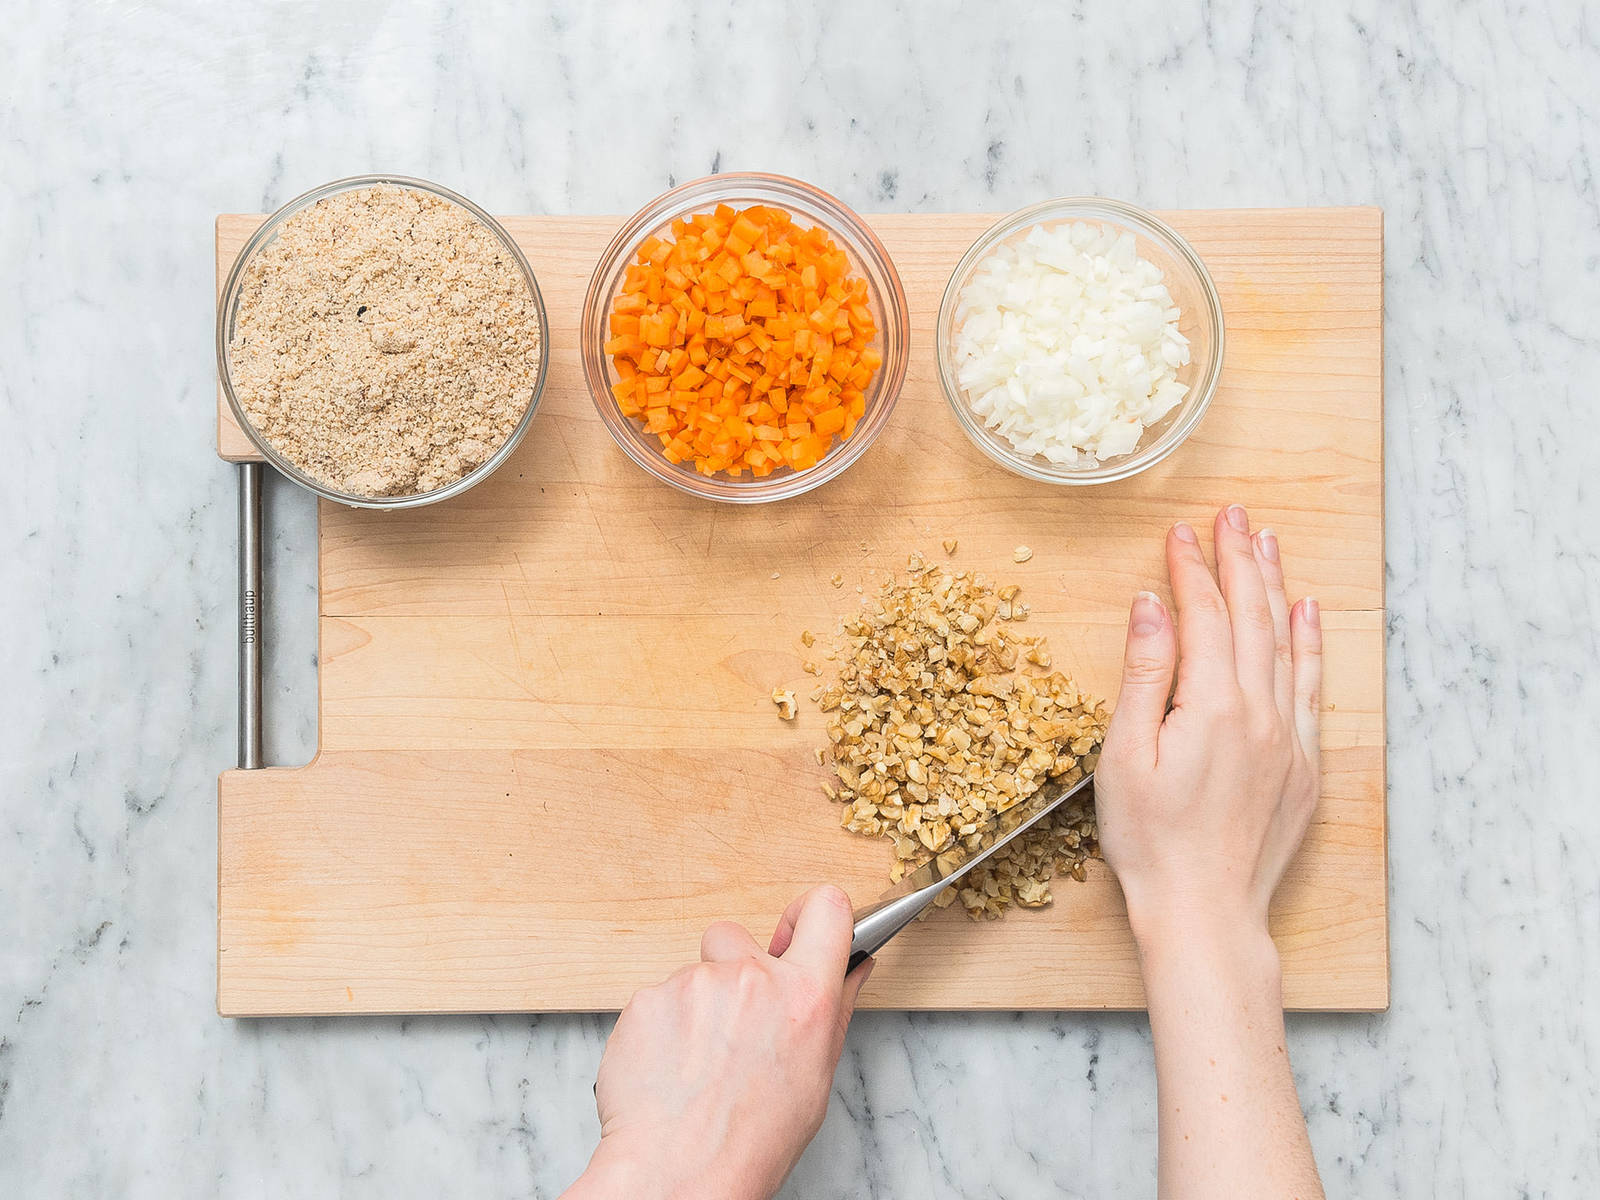 Preheat oven to 190°C/375°F. Grease loaf pan and dust with breadcrumbs. Peel and finely dice some of  the onions and carrot. Finely chop walnuts. Crumble white bread. Add ground flaxseed and water to a small bowl and stir to combine.